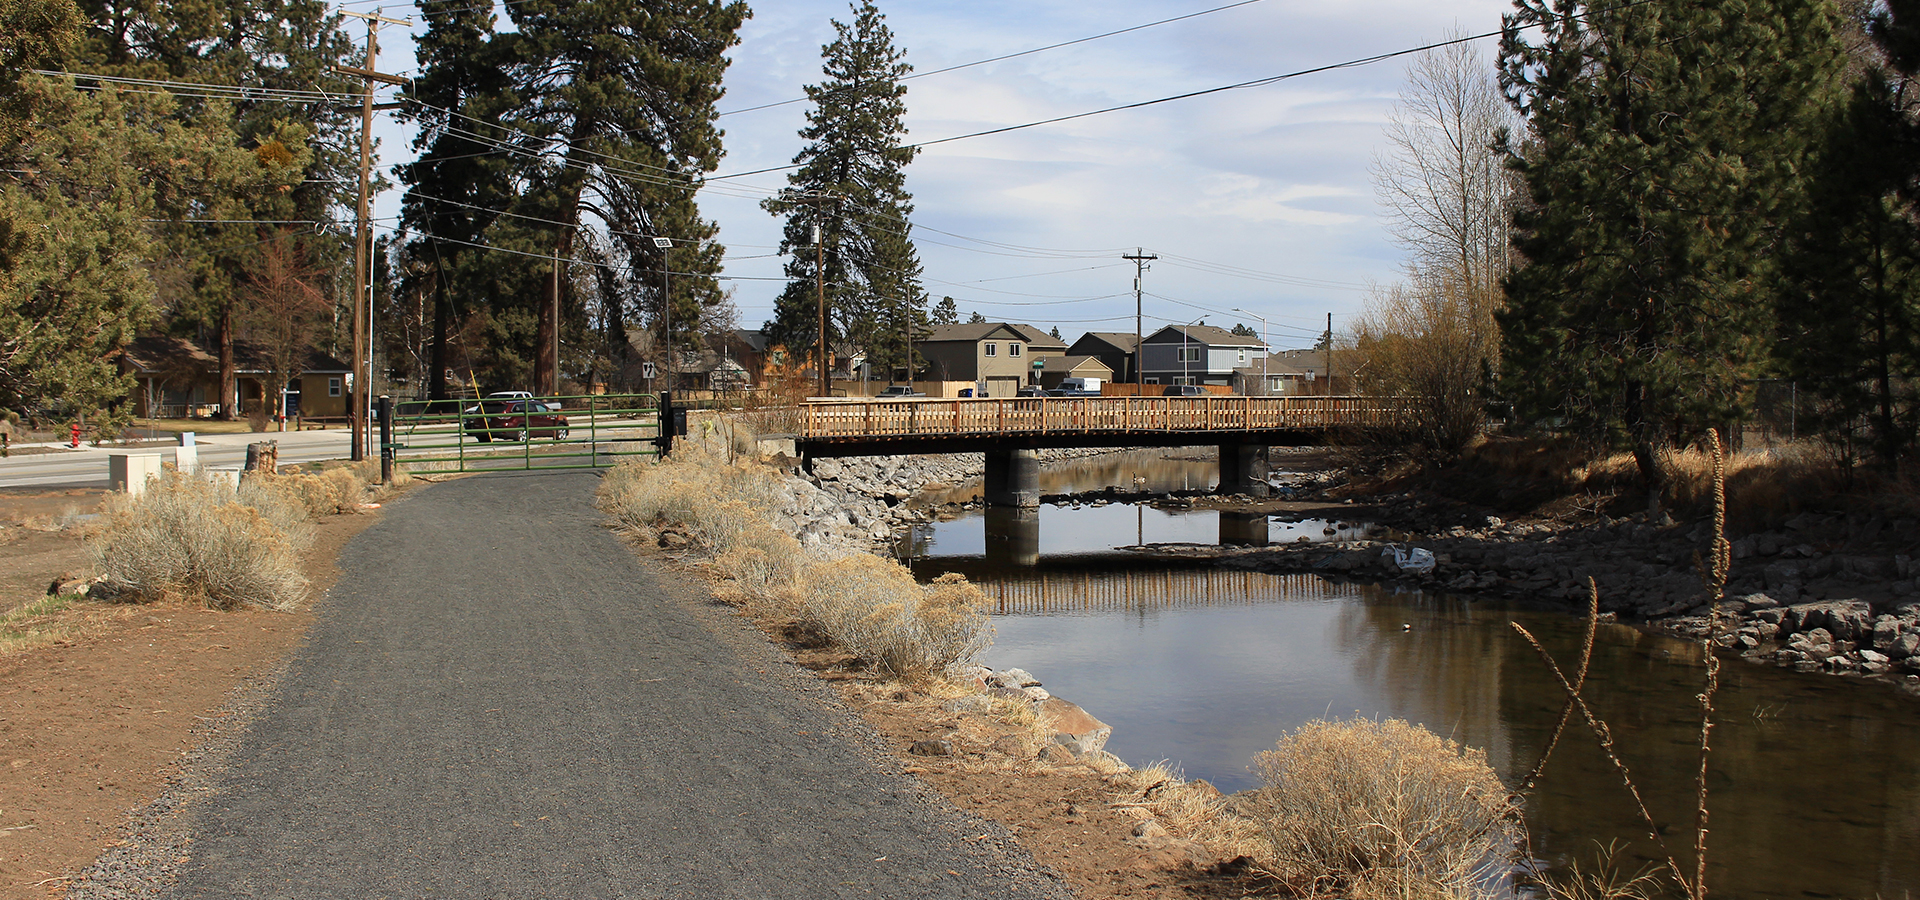 Image of the Central Oregon Historic Canal Trail in Bend, Oregon.